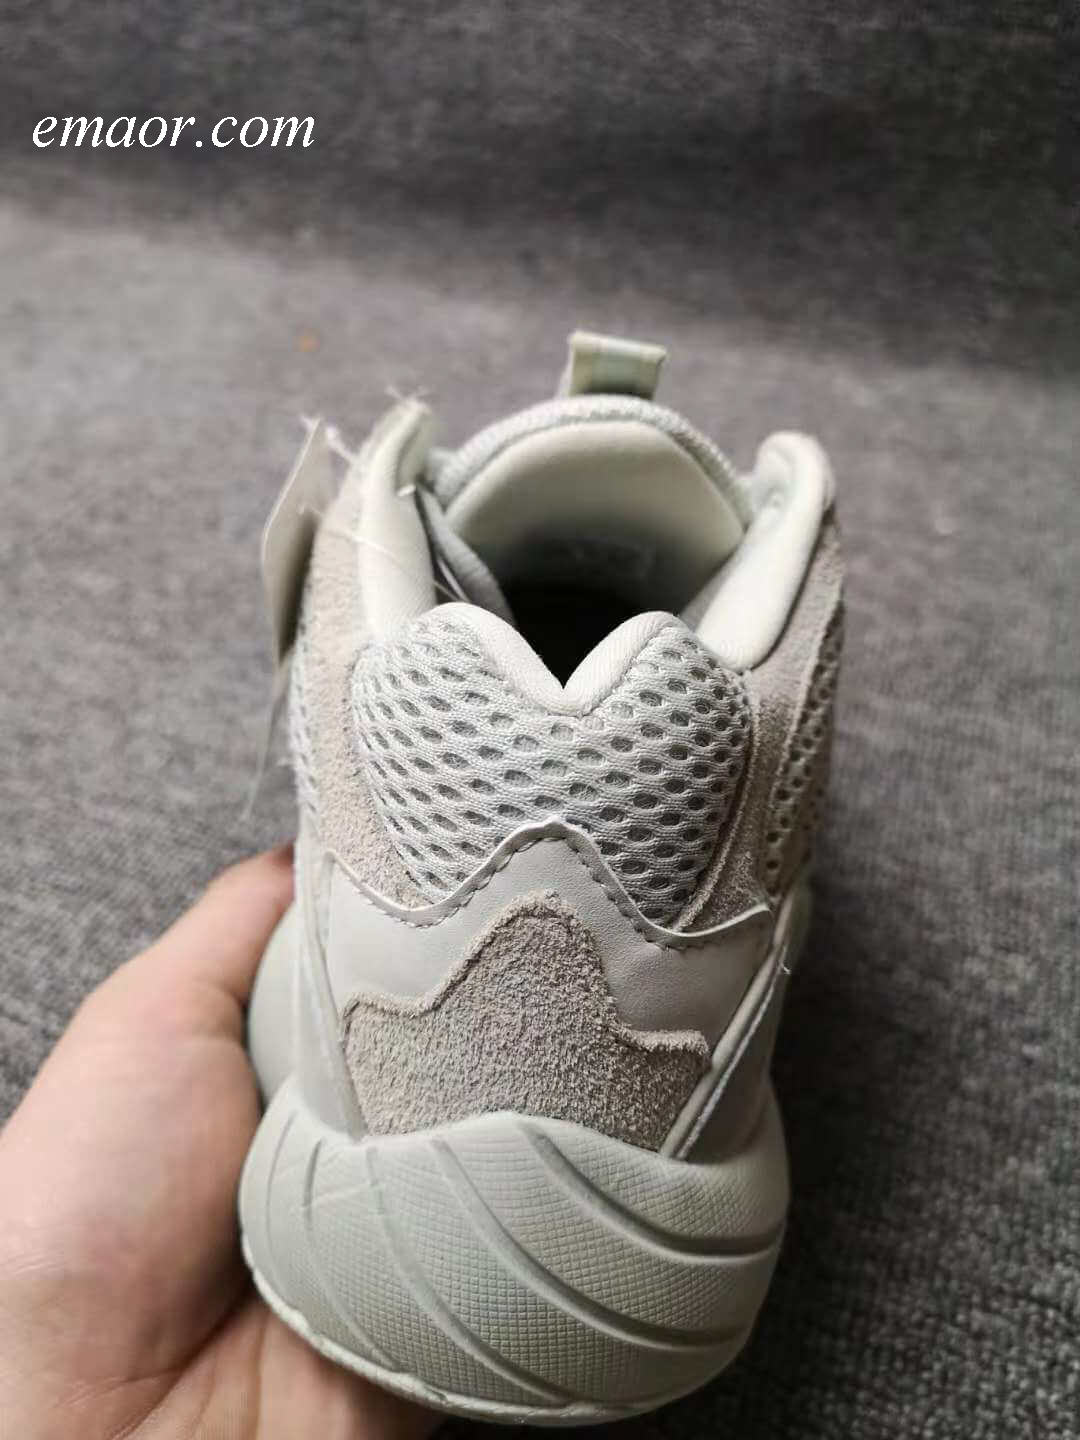 separation shoes c5f9a 3db18 Yeezy 500 Shoes Man's And Women's Yeezy 500 Salt Release ...